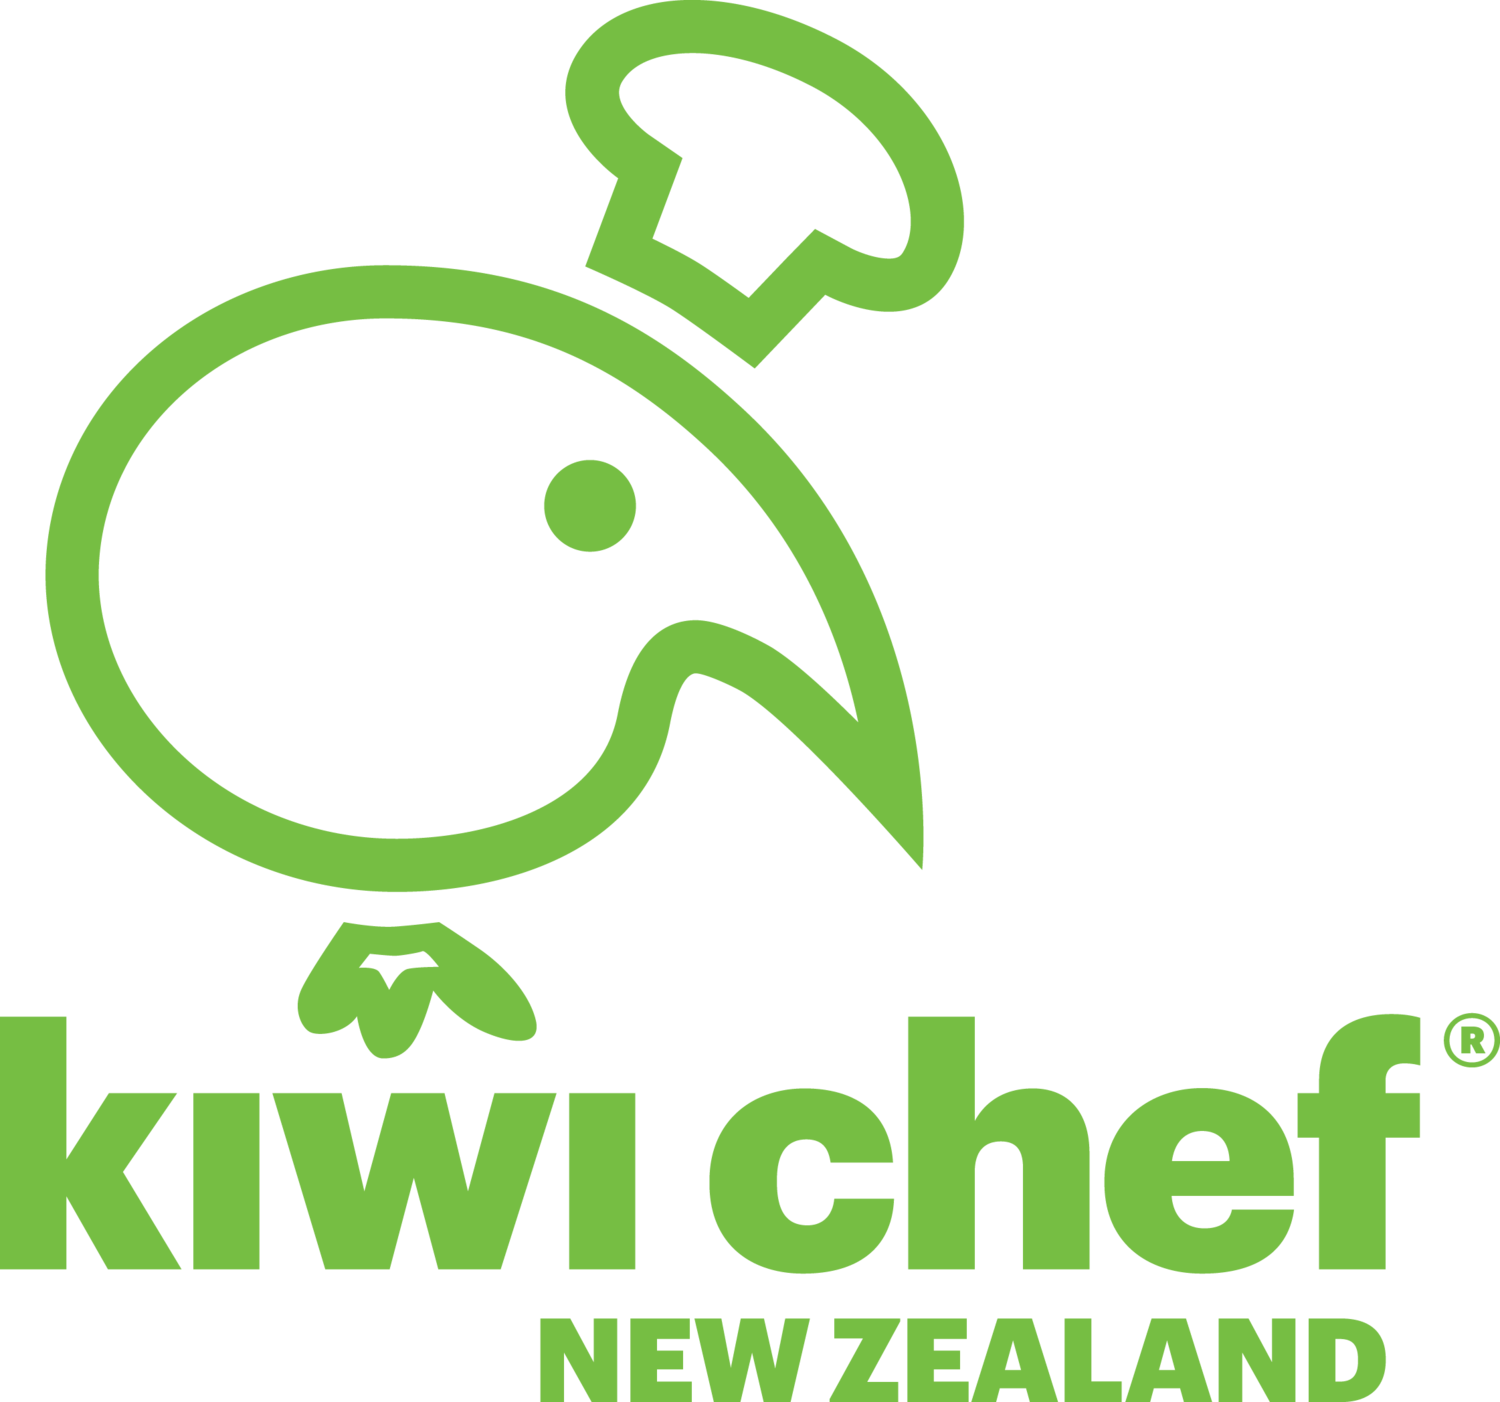 Kiwi Chef | Butter Replacement